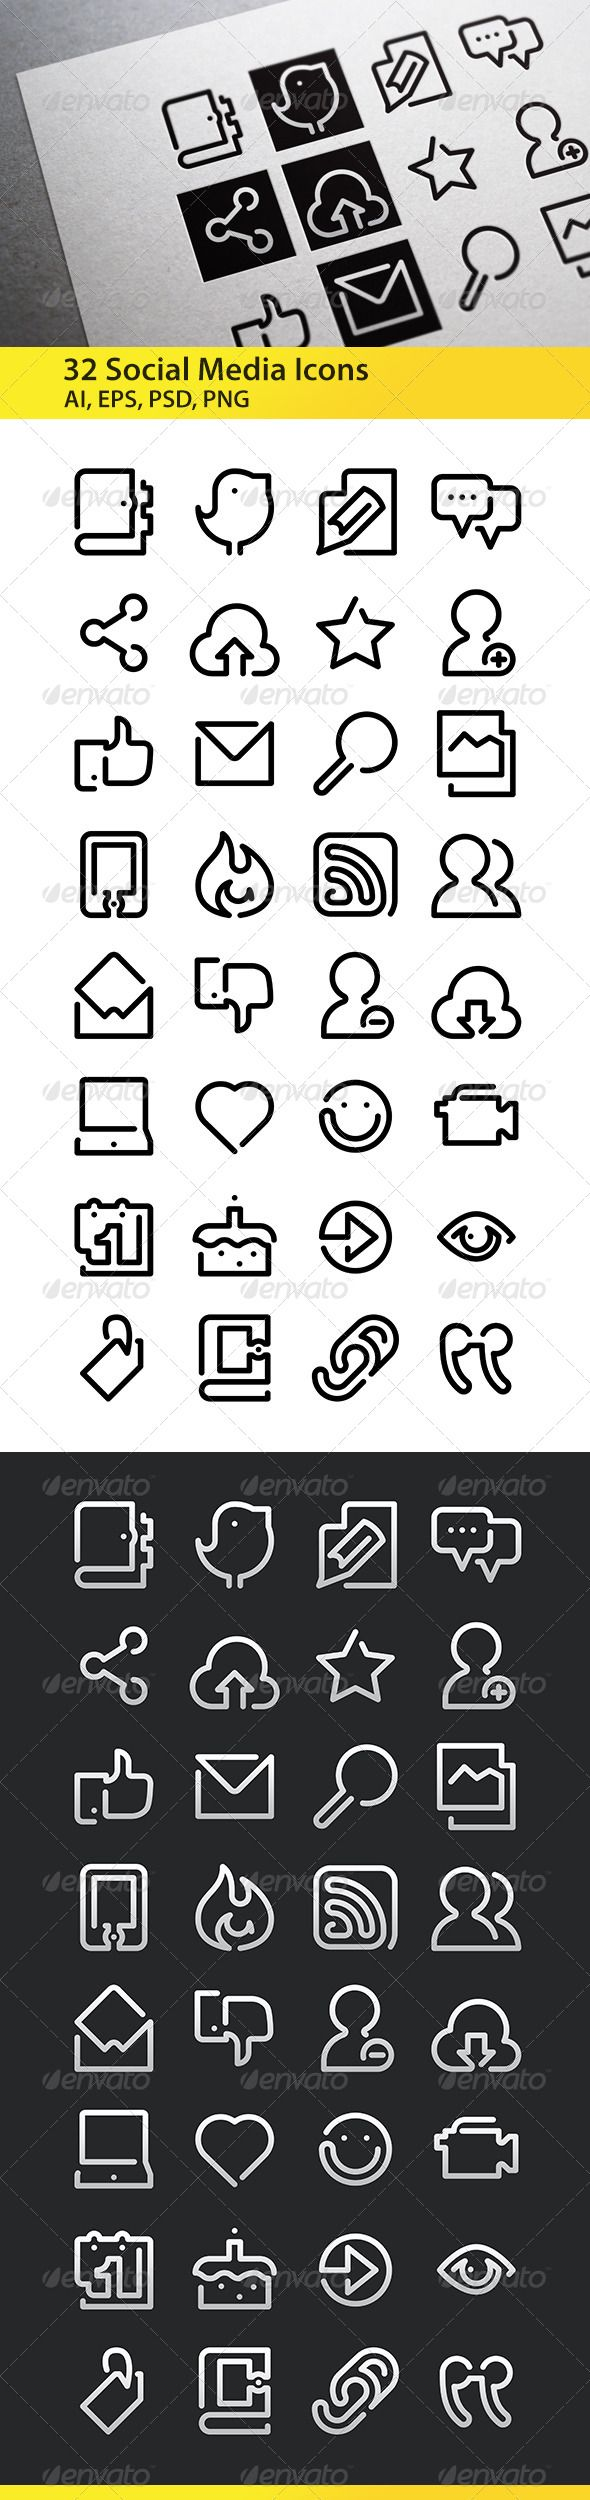 Social Media - One line icons